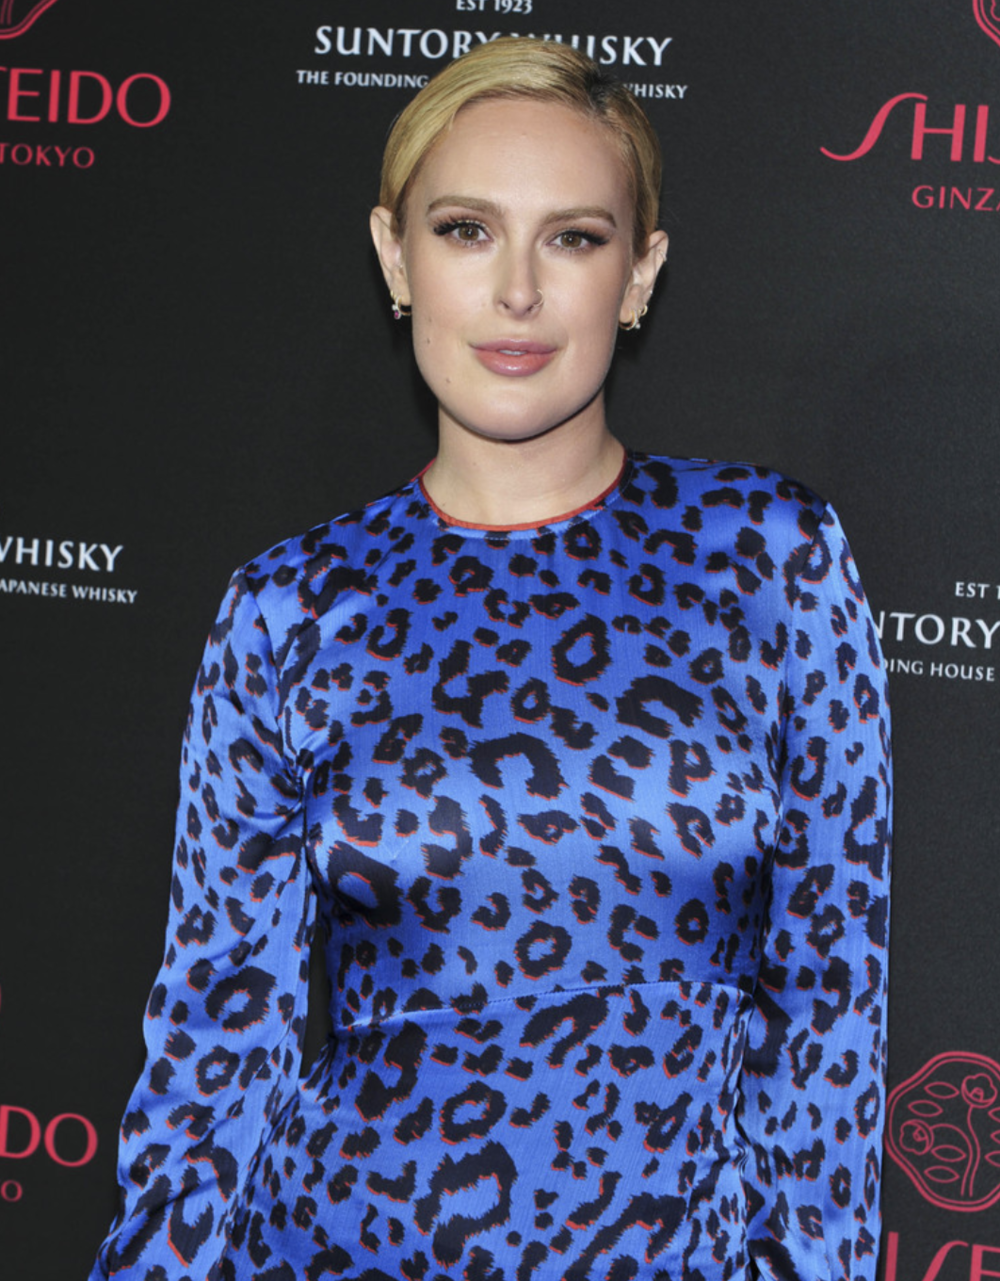 Actress/singer Rumer Willis attends Shiseido Cocktail Event at Quixote Studios West Hollywood on September 25, 2018 in West Hollywood, California. (Photo by Michael Bezjian/Getty Images) Photo Credit – Getty Images